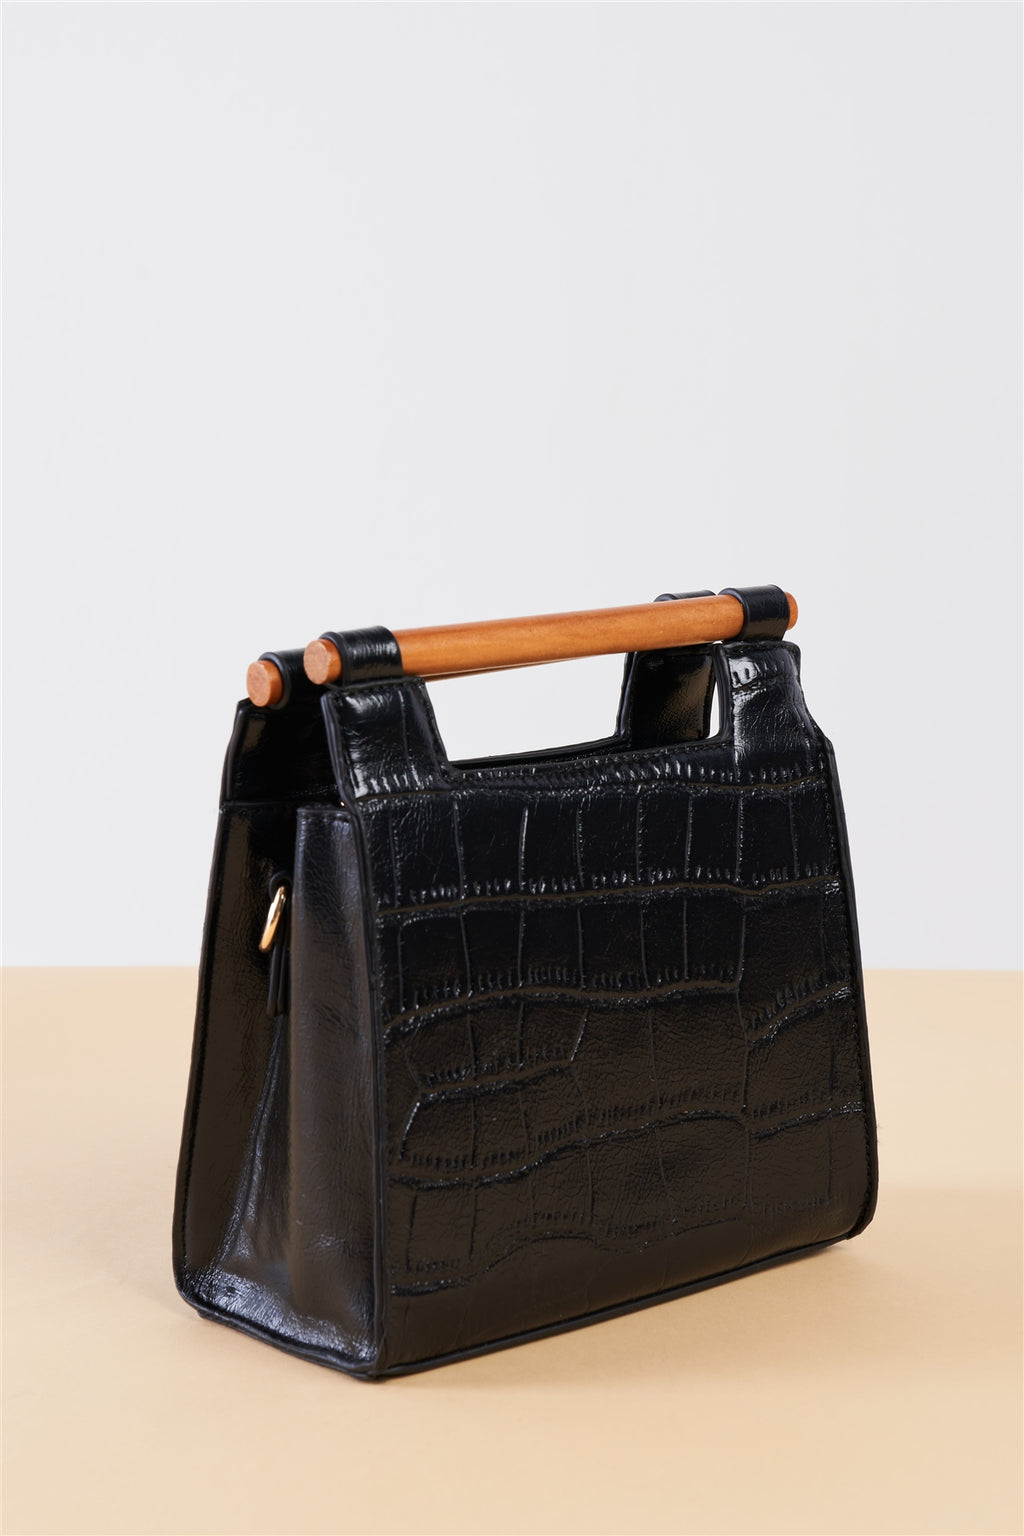 Black Leather Mini Handbag - Stylish Summer Handbag